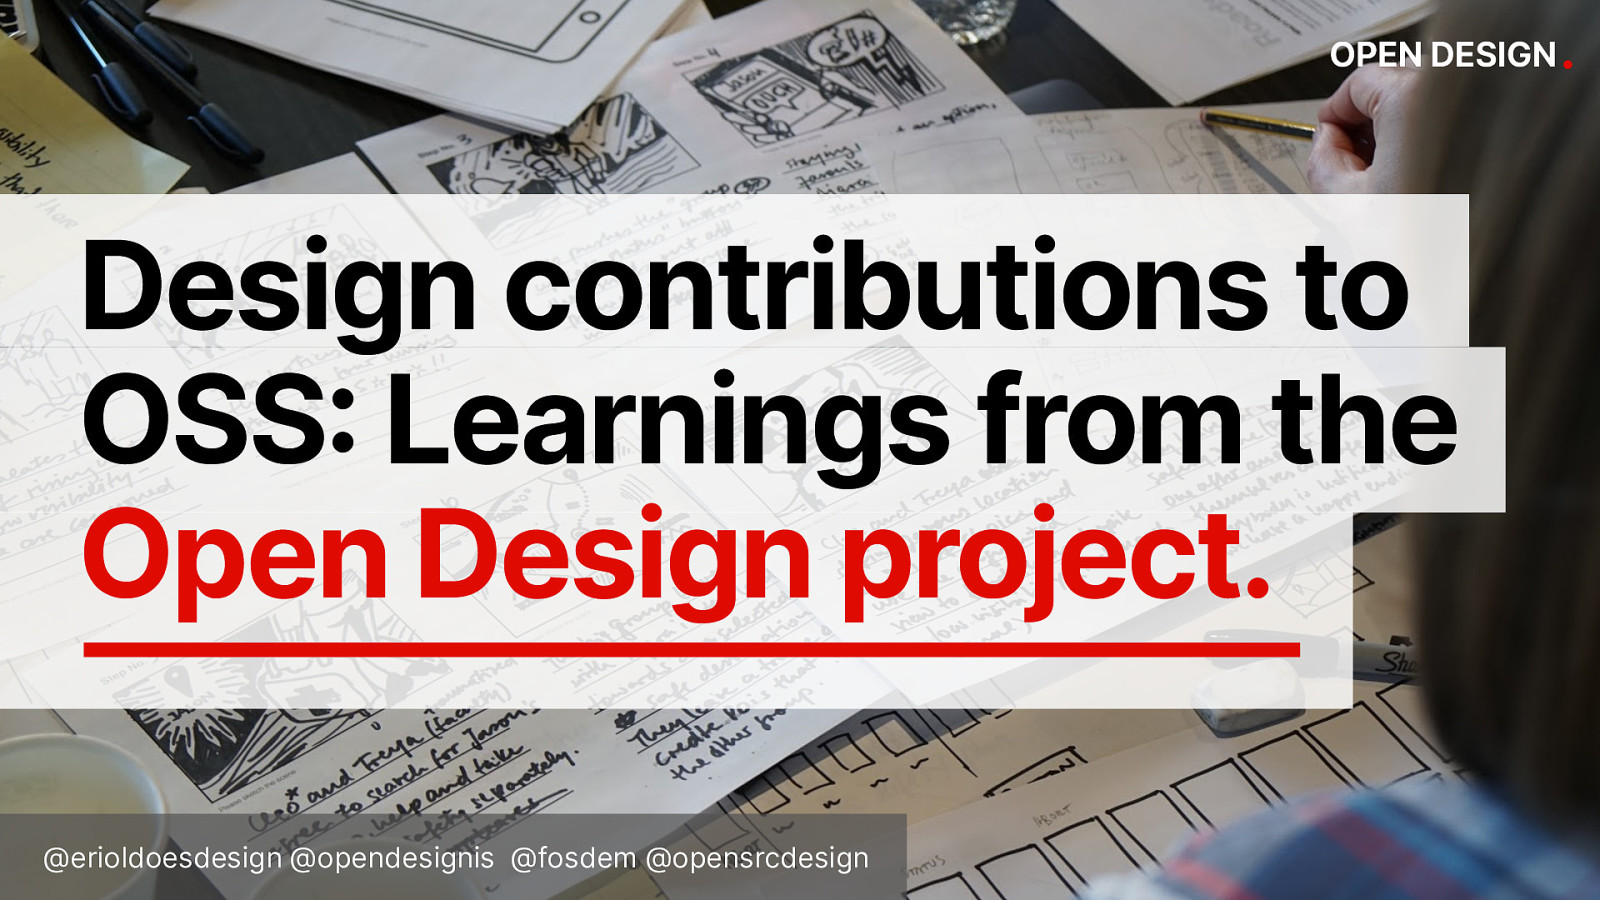 Design contributions to OSS: Learnings from the Open Design project.